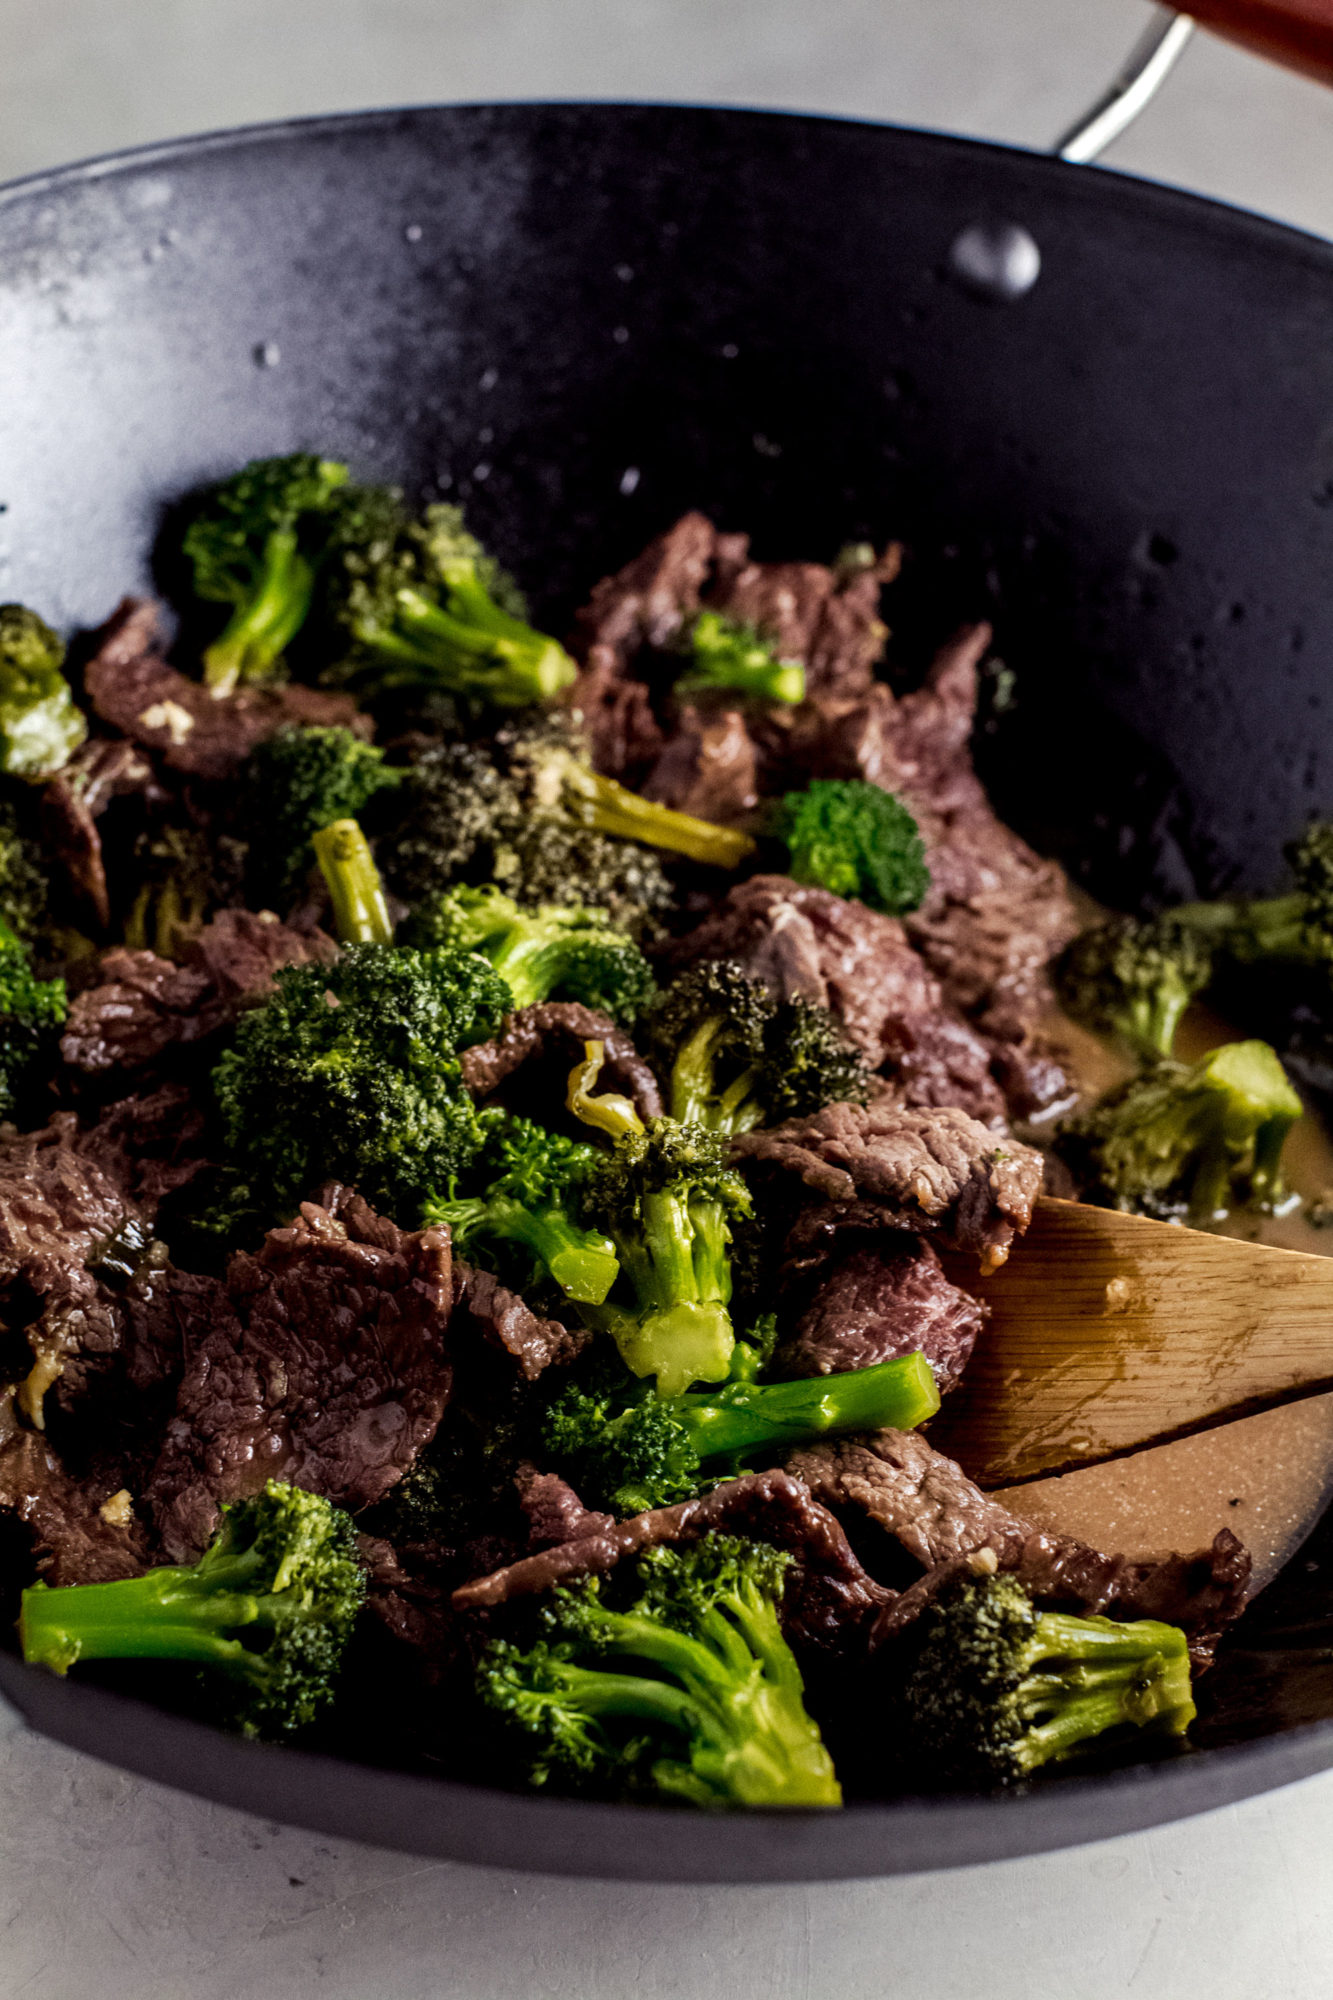 beef and broccoli stir fry in a black wok